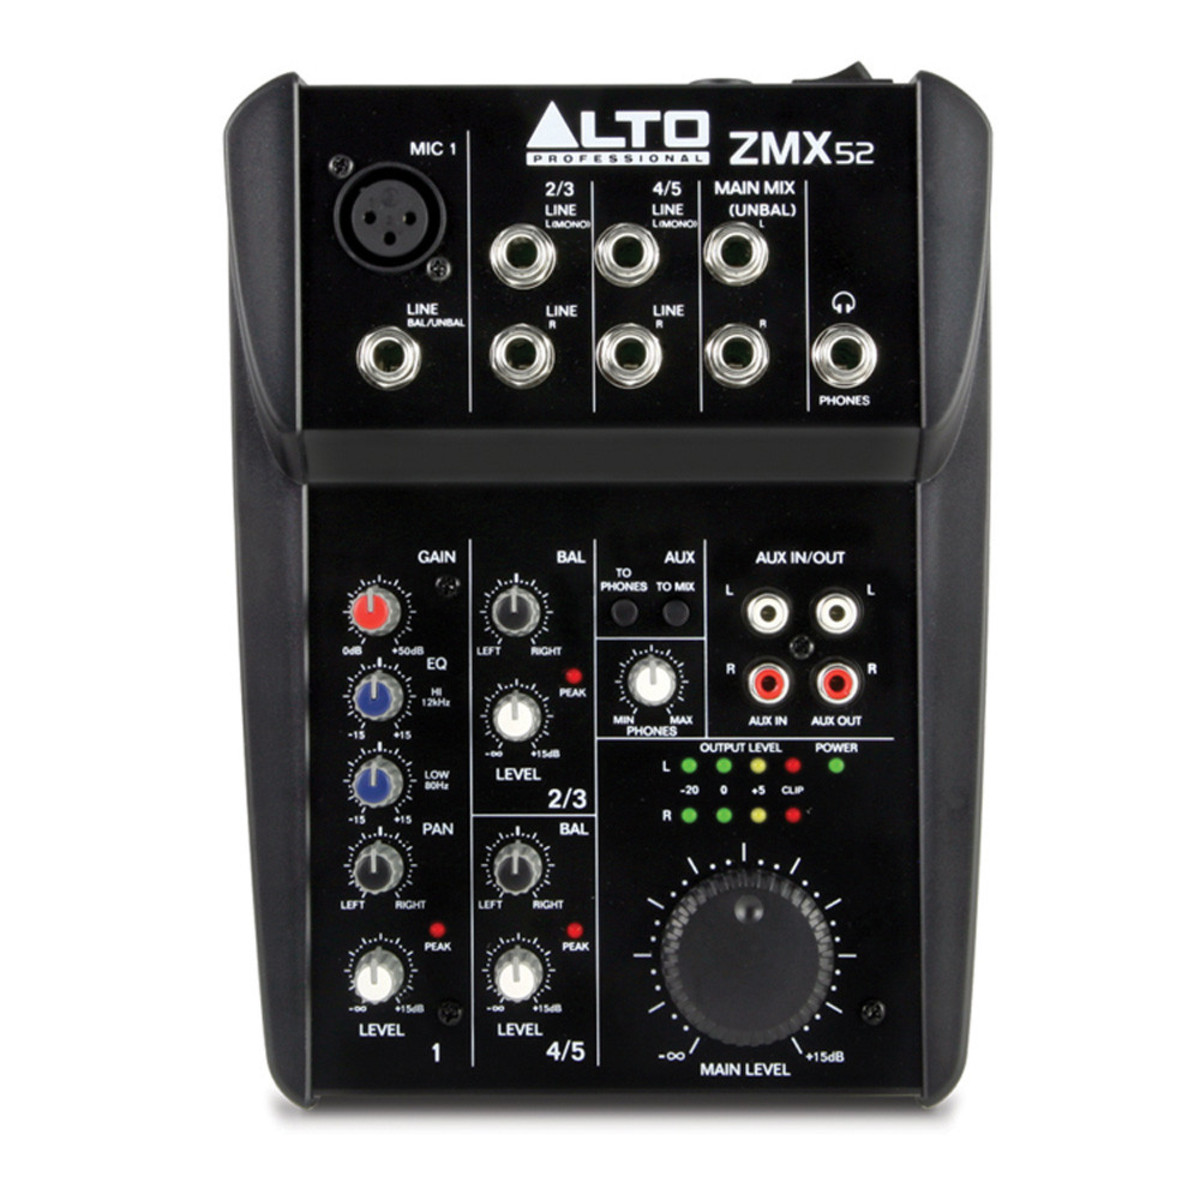 Alto Zephyr Zmx52 5 Channel Compact Mixer At Gear4music